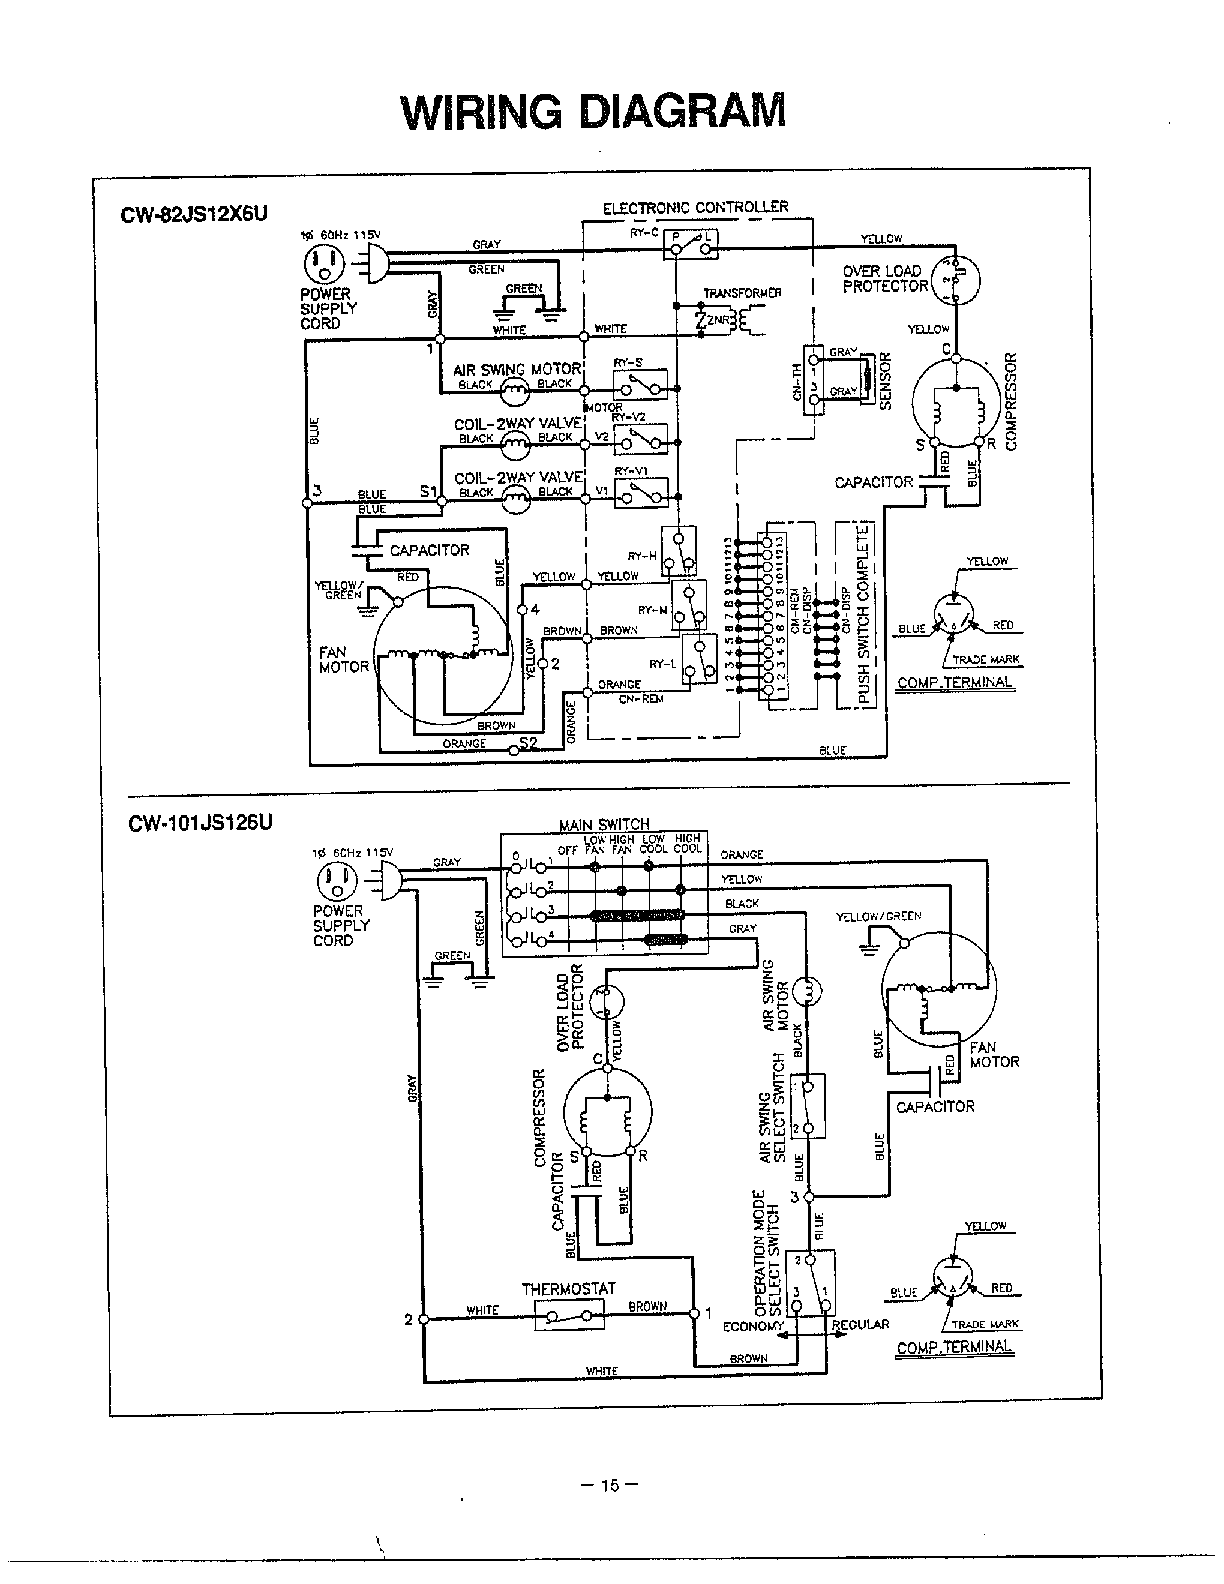 Pana Pacific Radio Wiring Diagram 33 Images Panasonic Stereo Wa001443 00015resize6652c861 Harness Kenworth